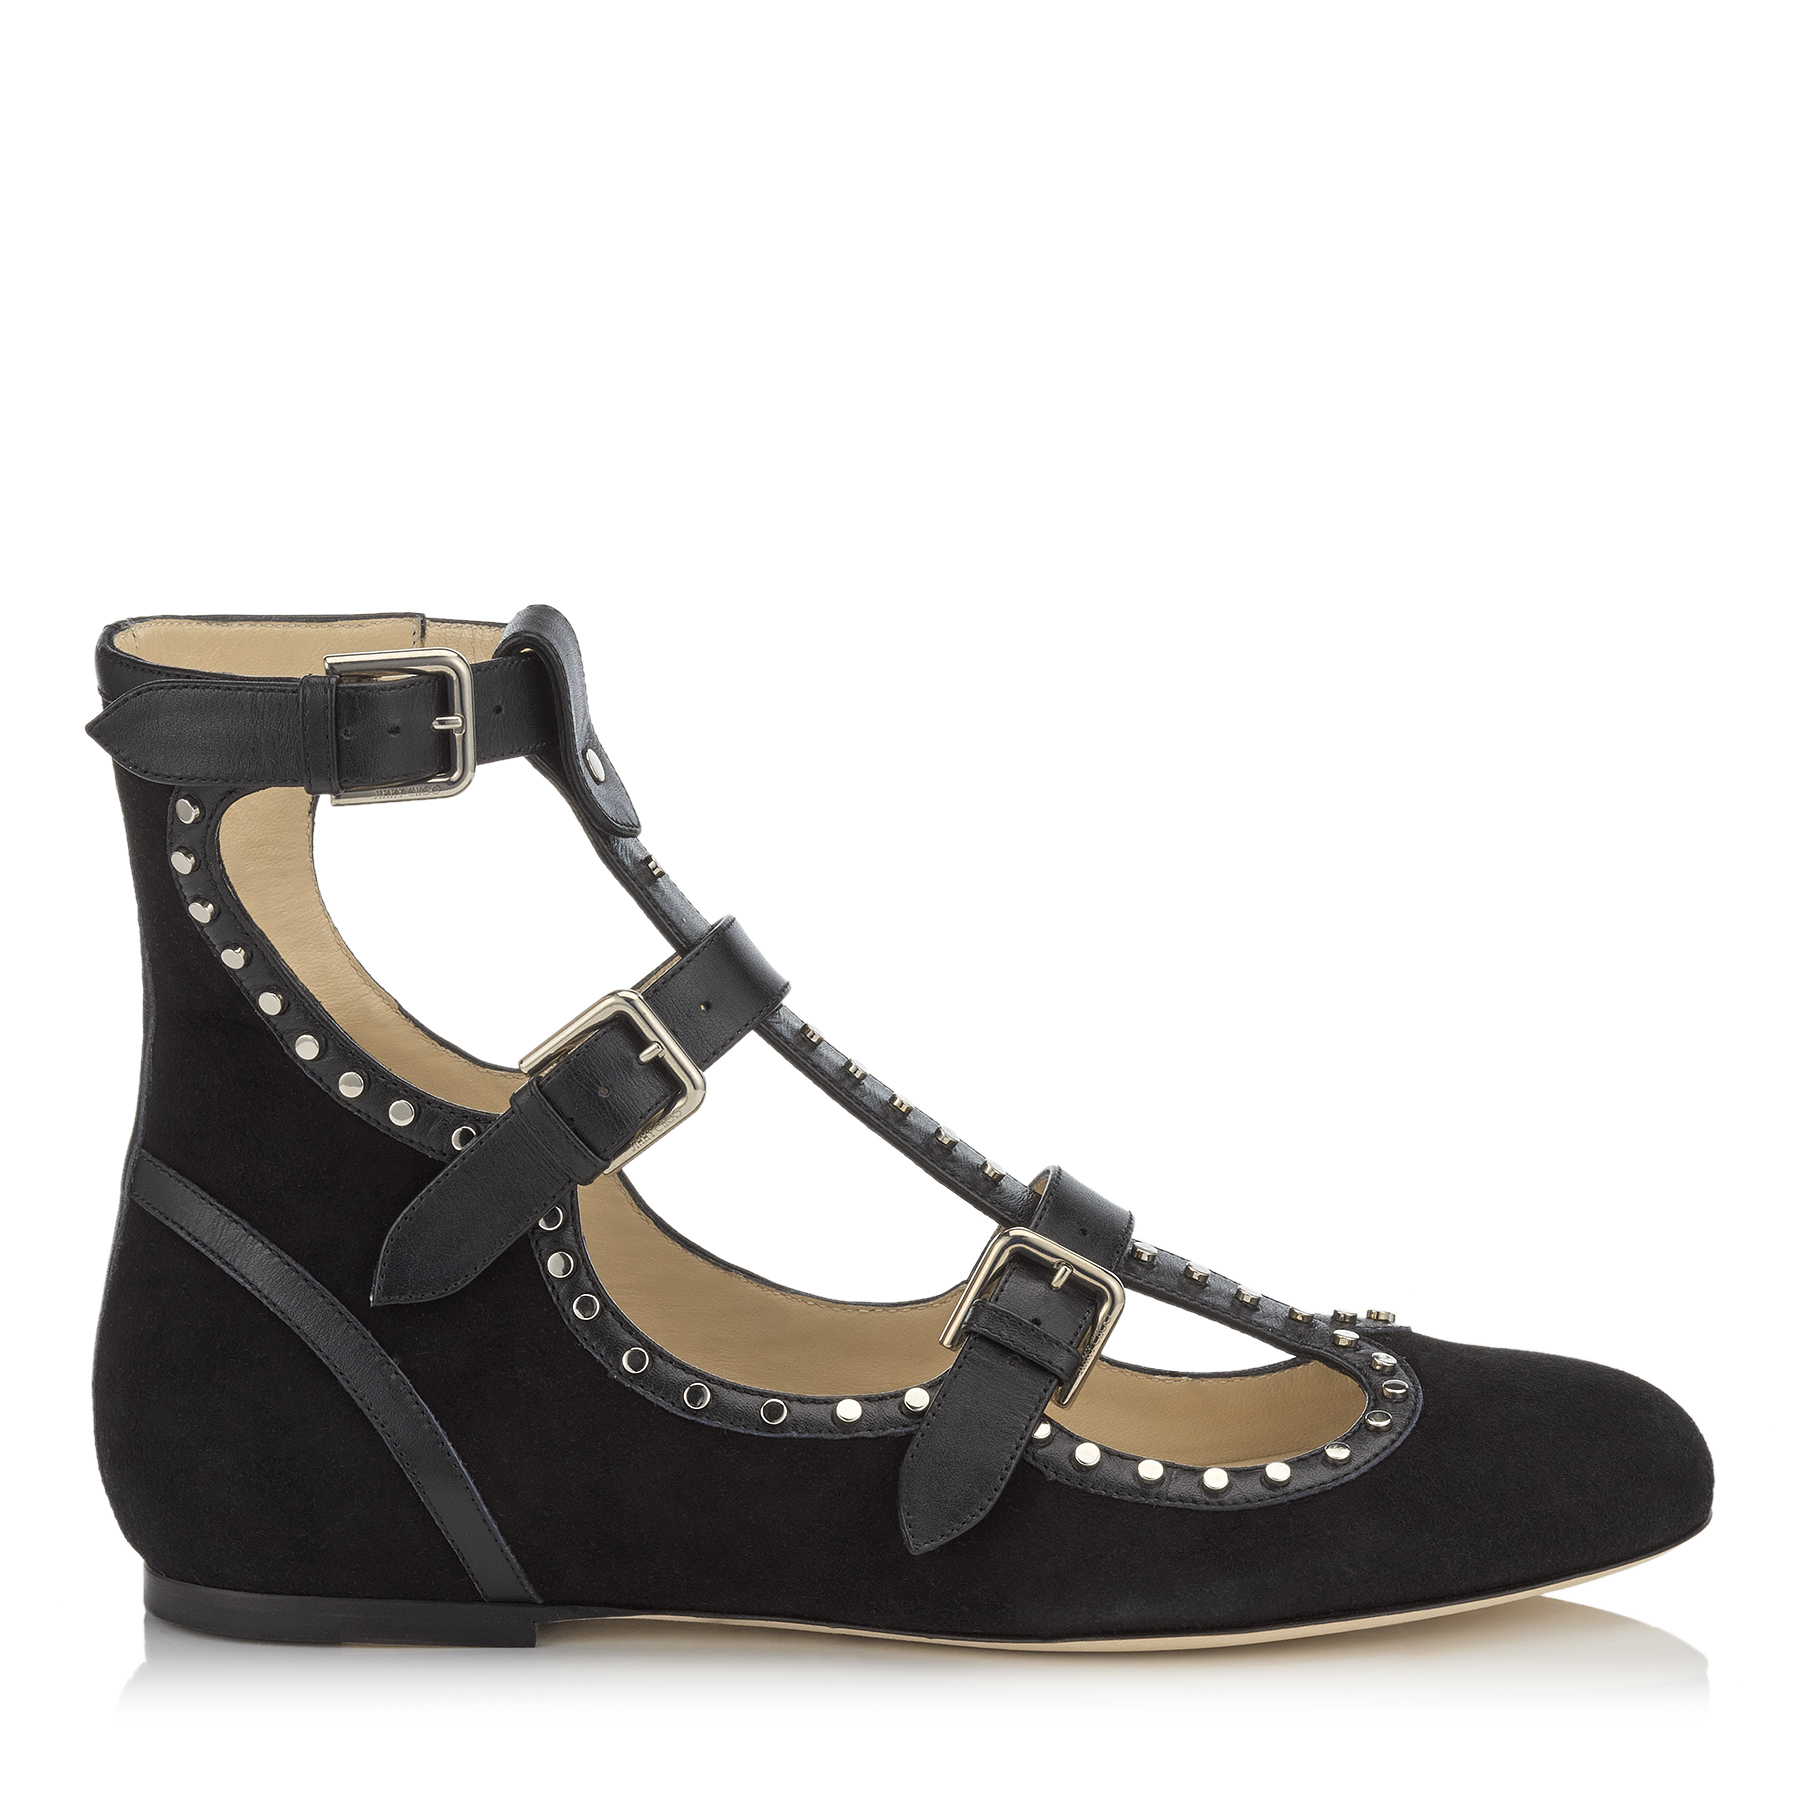 HARTLEY FLAT Black Suede and Shiny Leather Round Toe Flats with Studs